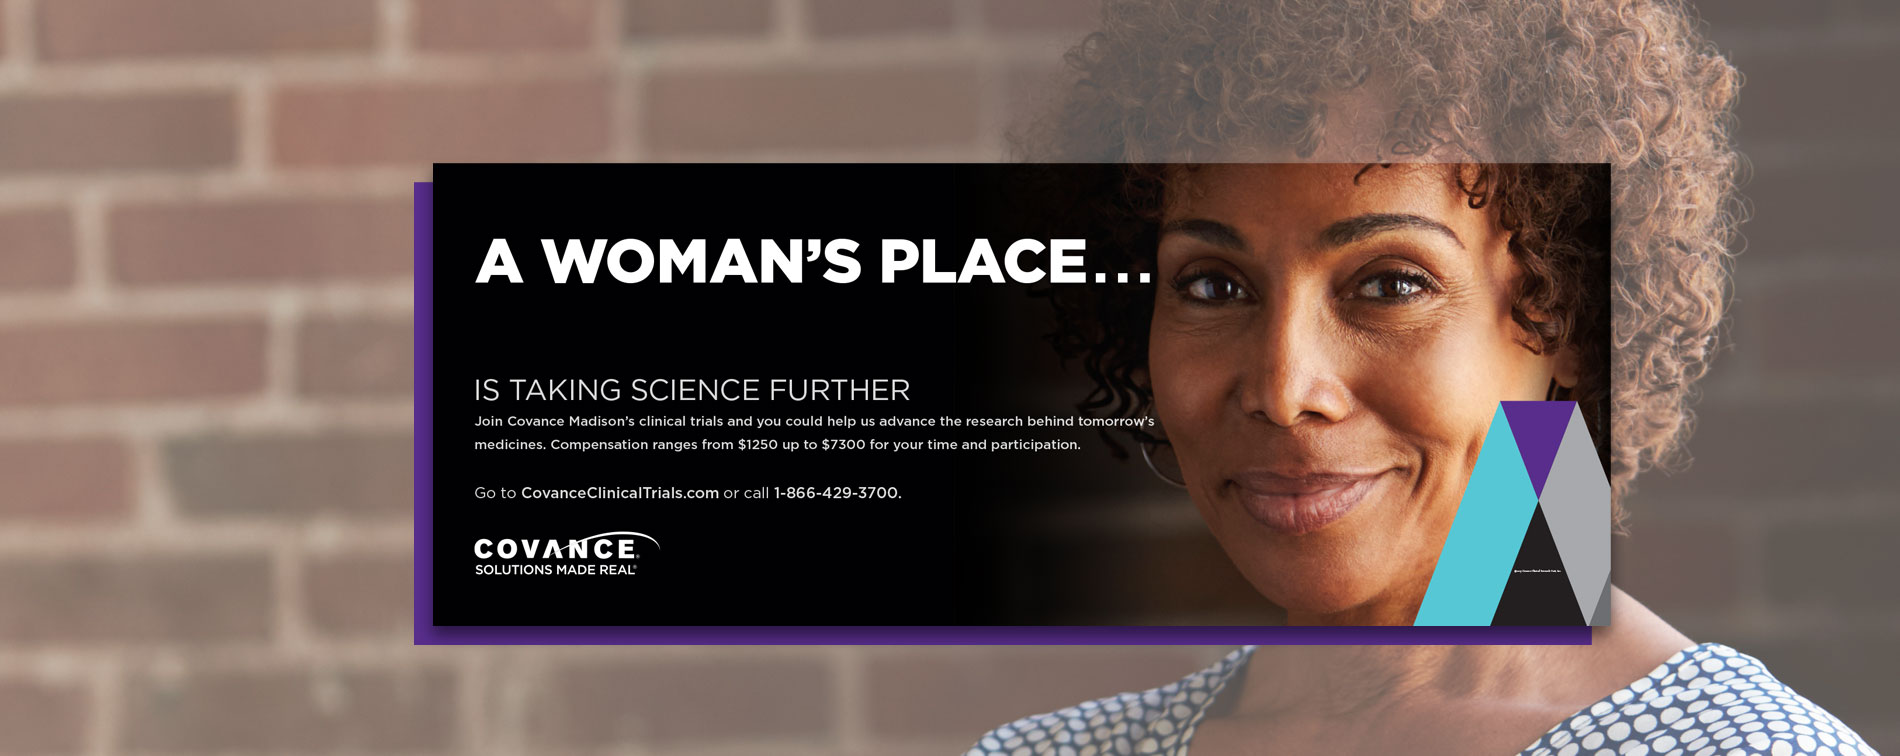 Covance bus ad: A woman's place is taking science further